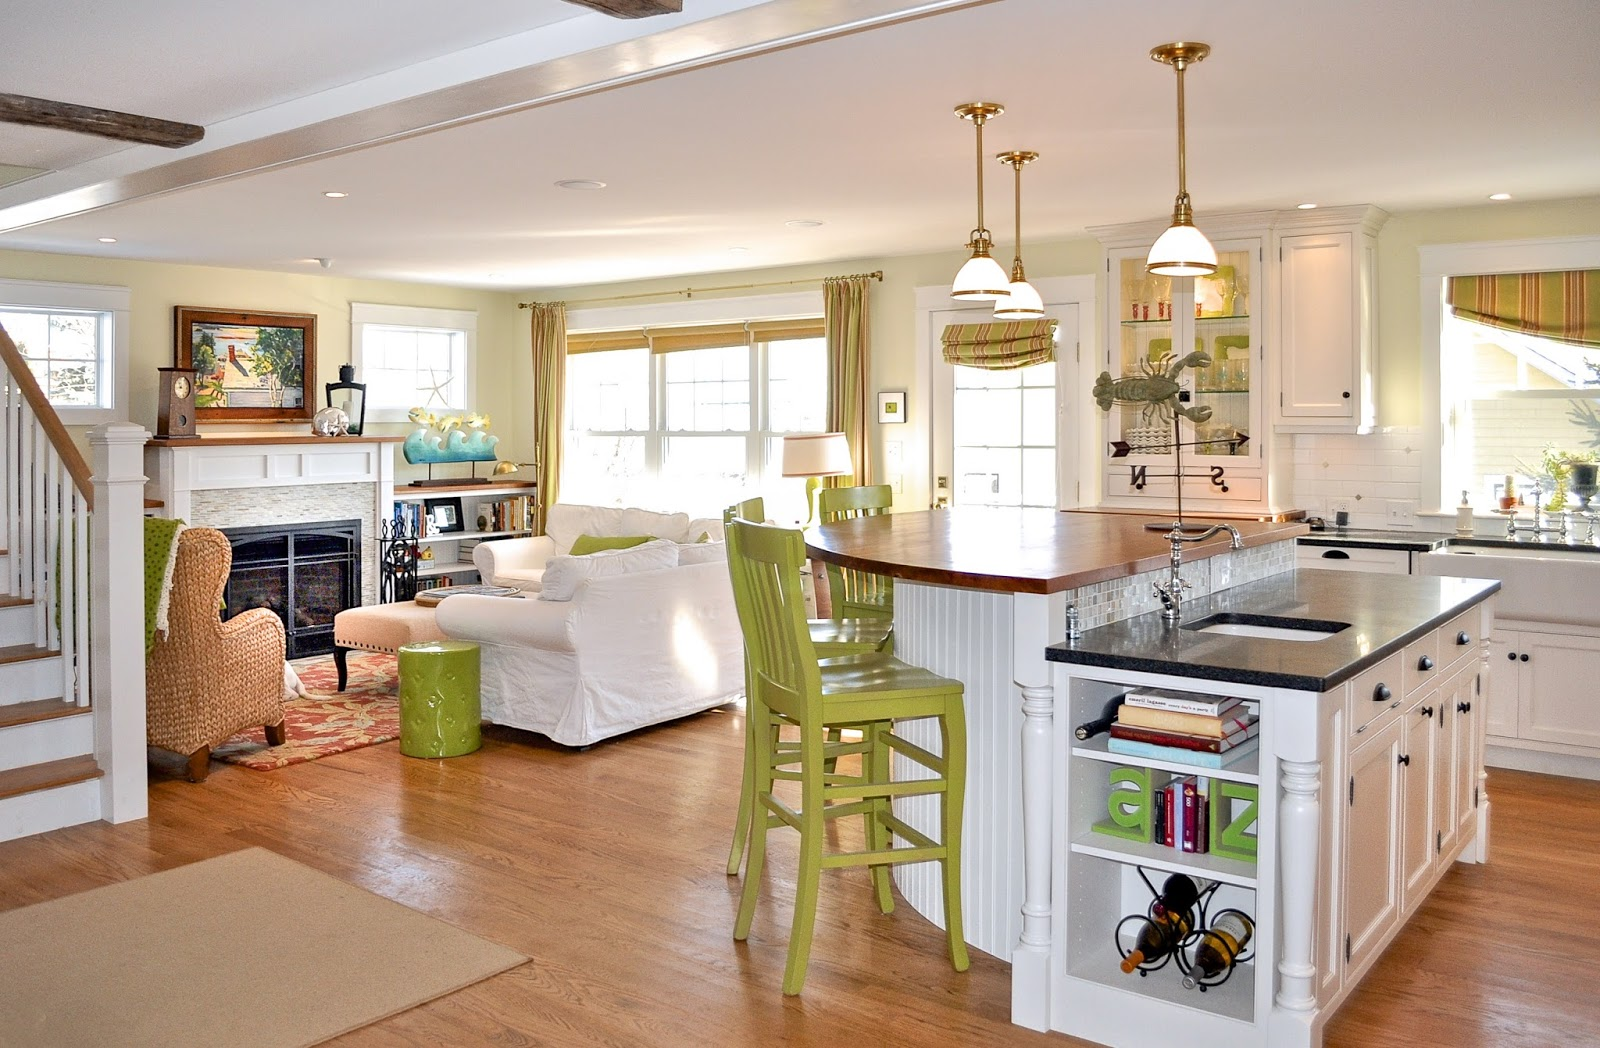 SoPo Cottage: Our Own Open Concept Cottage: First Floor